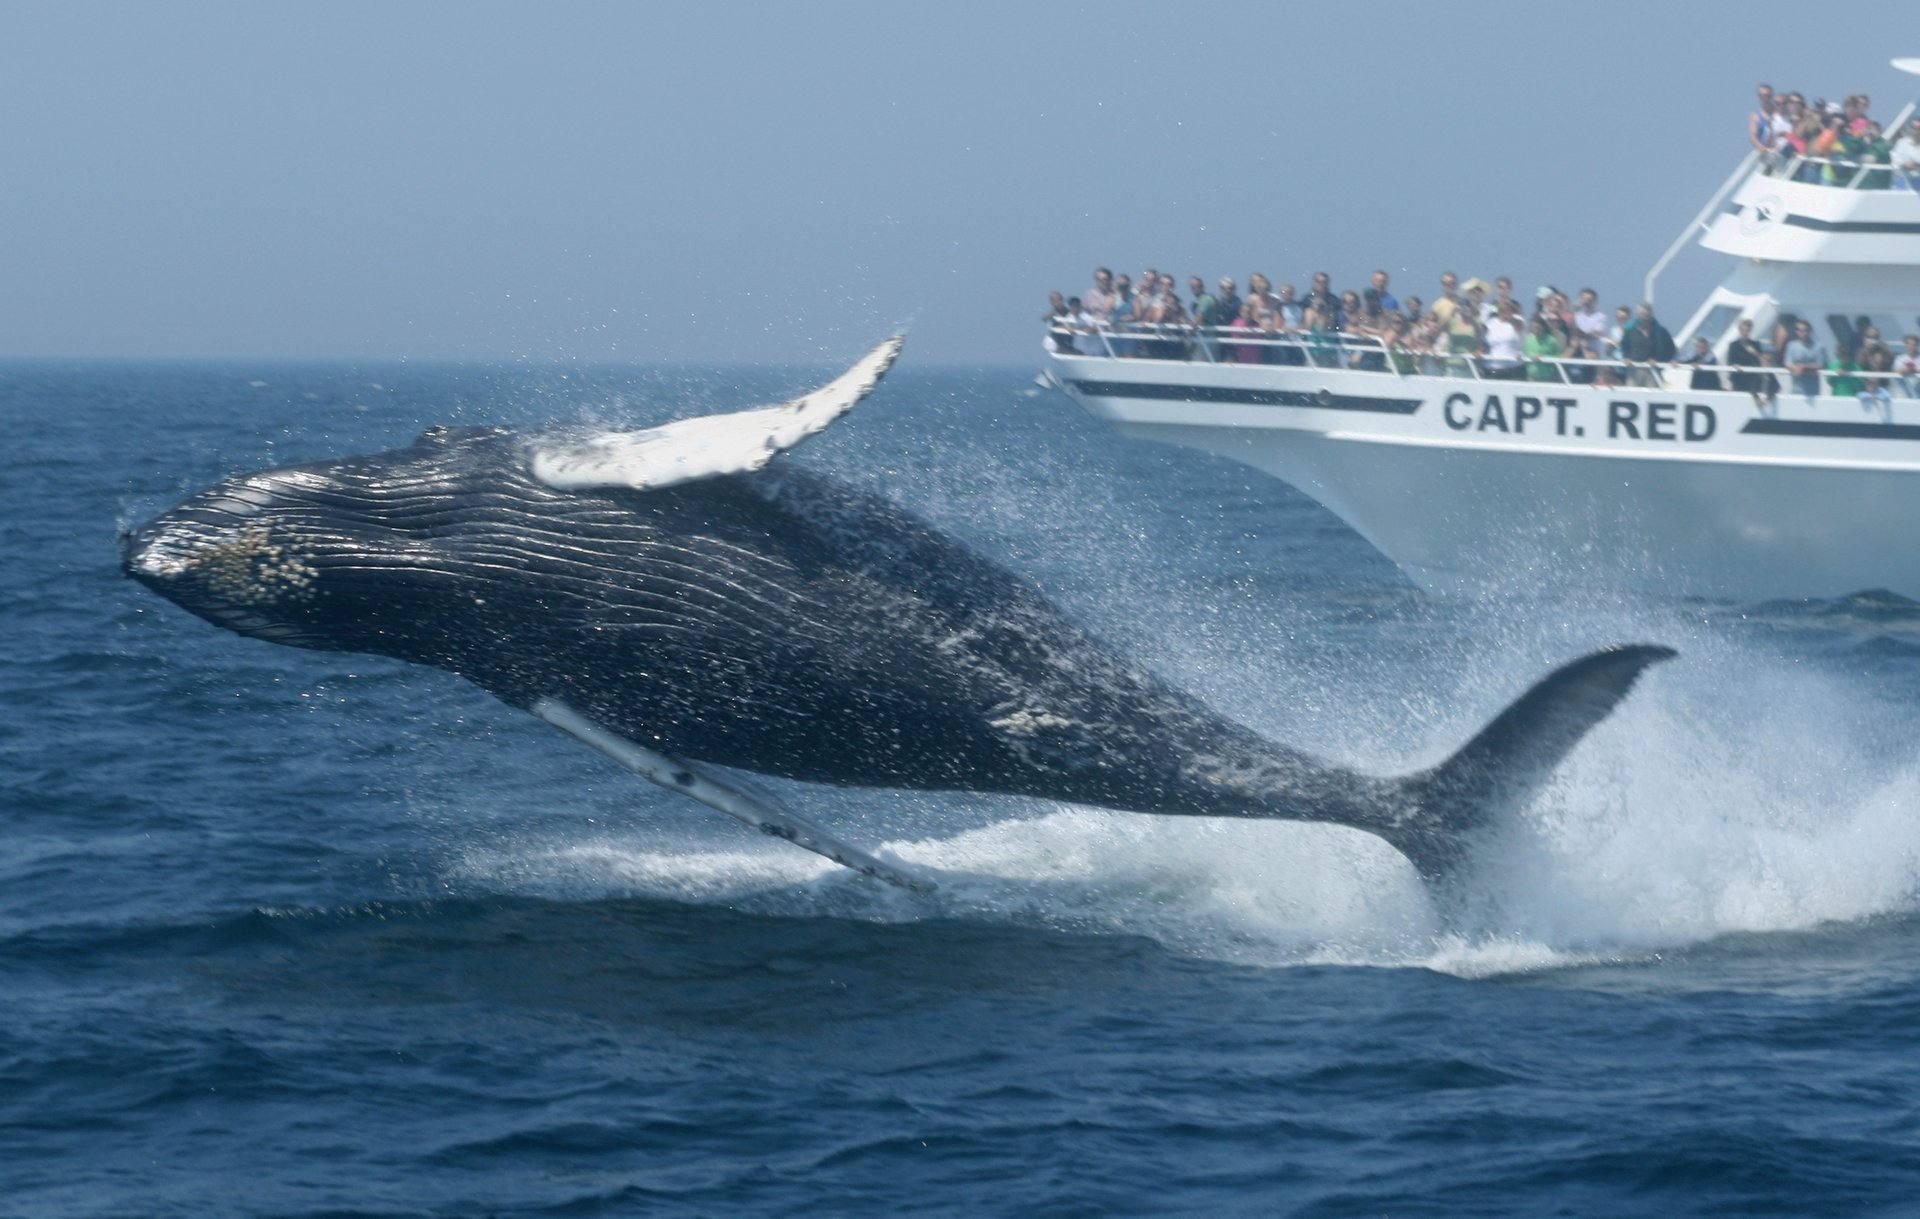 Whale Watching in Massachusetts 2020 - Best Time